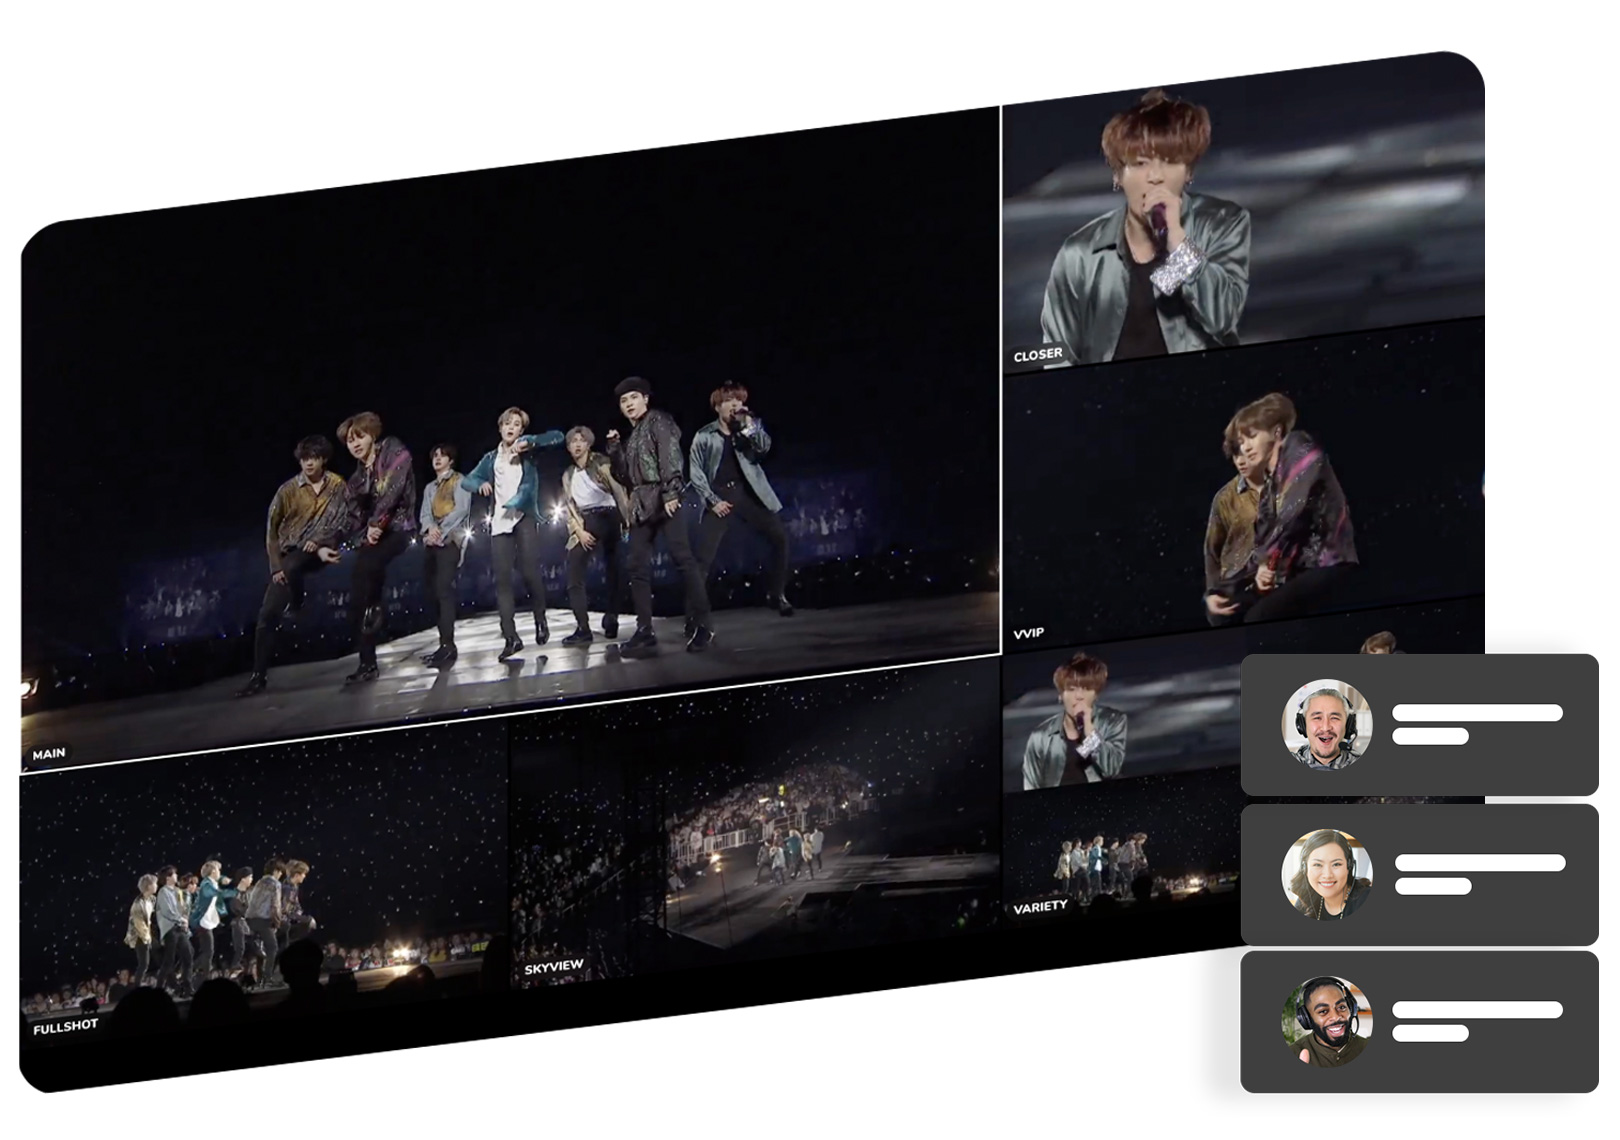 multi-view of bts show